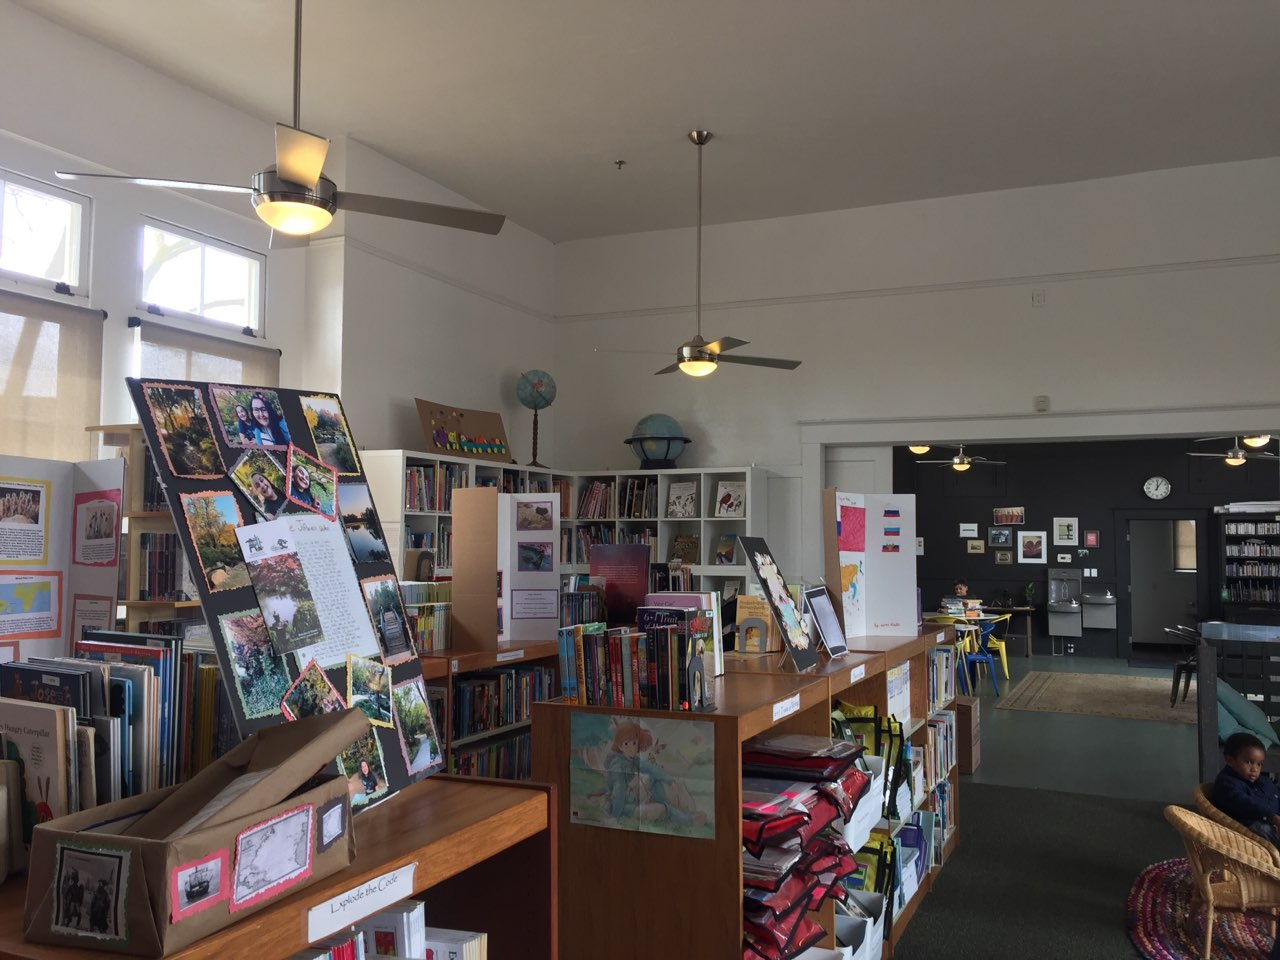 The former Venice School is now a library that supports the enrichment activities for the Eleanor Roosevelt Learning Center. Photo- Steve Newvine